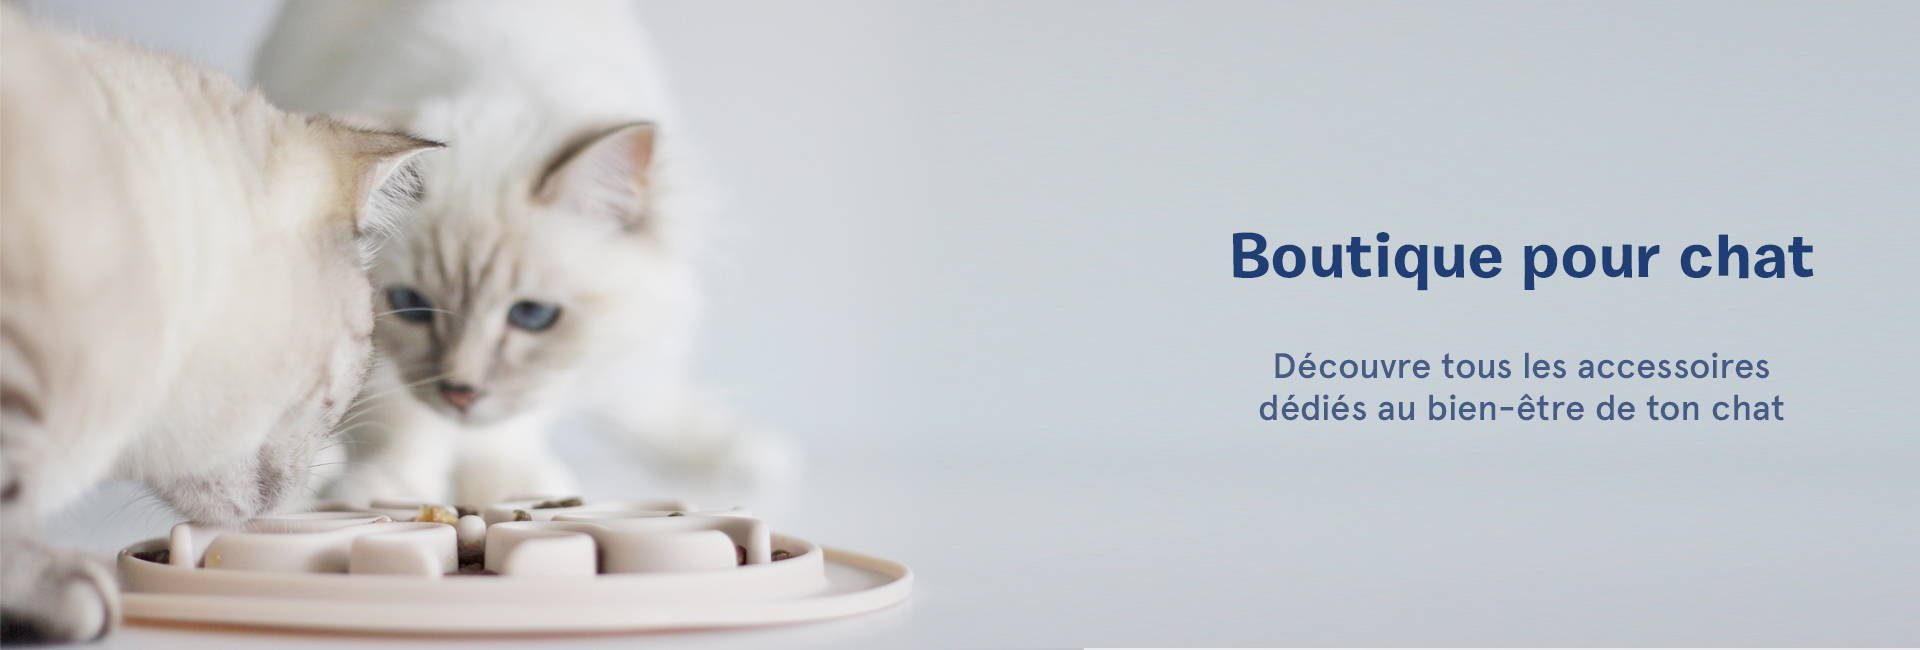 inooko-boutique-francaise-pour-chat